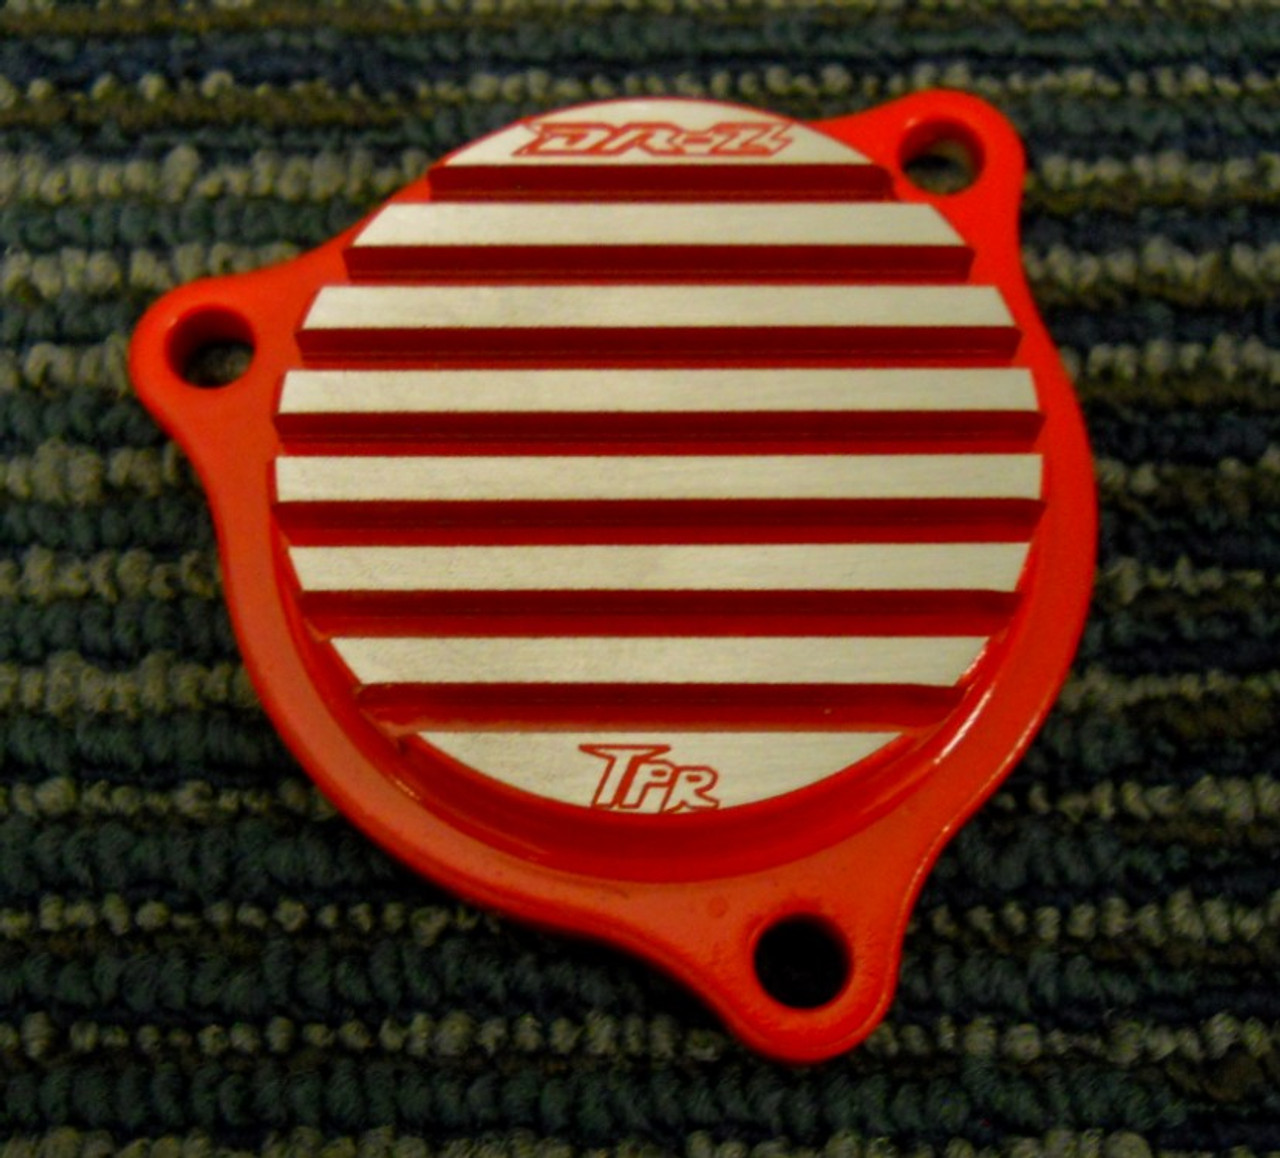 Finned Oil Filter Cap for DRZ400 (ALL Years and Models) - Billet Aluminum US Made by Topar Racing - Provides additional cooling